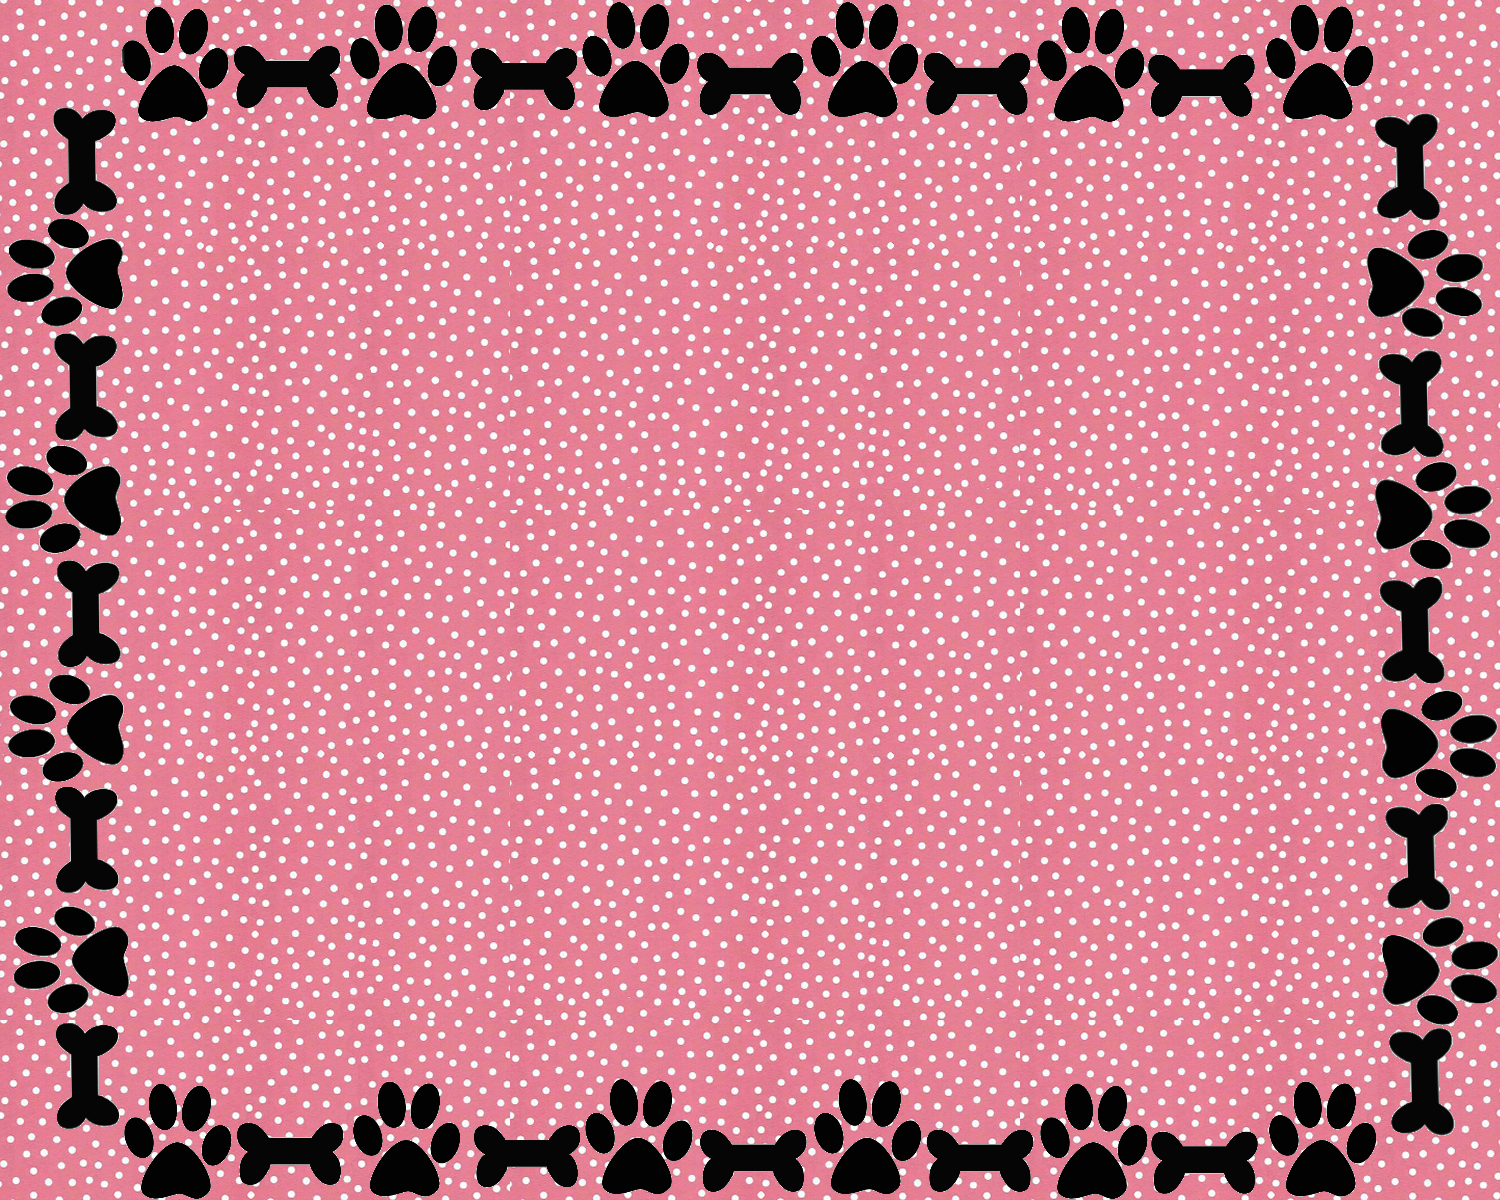 border for a2 card paw print blanket paw print blanket cheetah borders 1500x1200